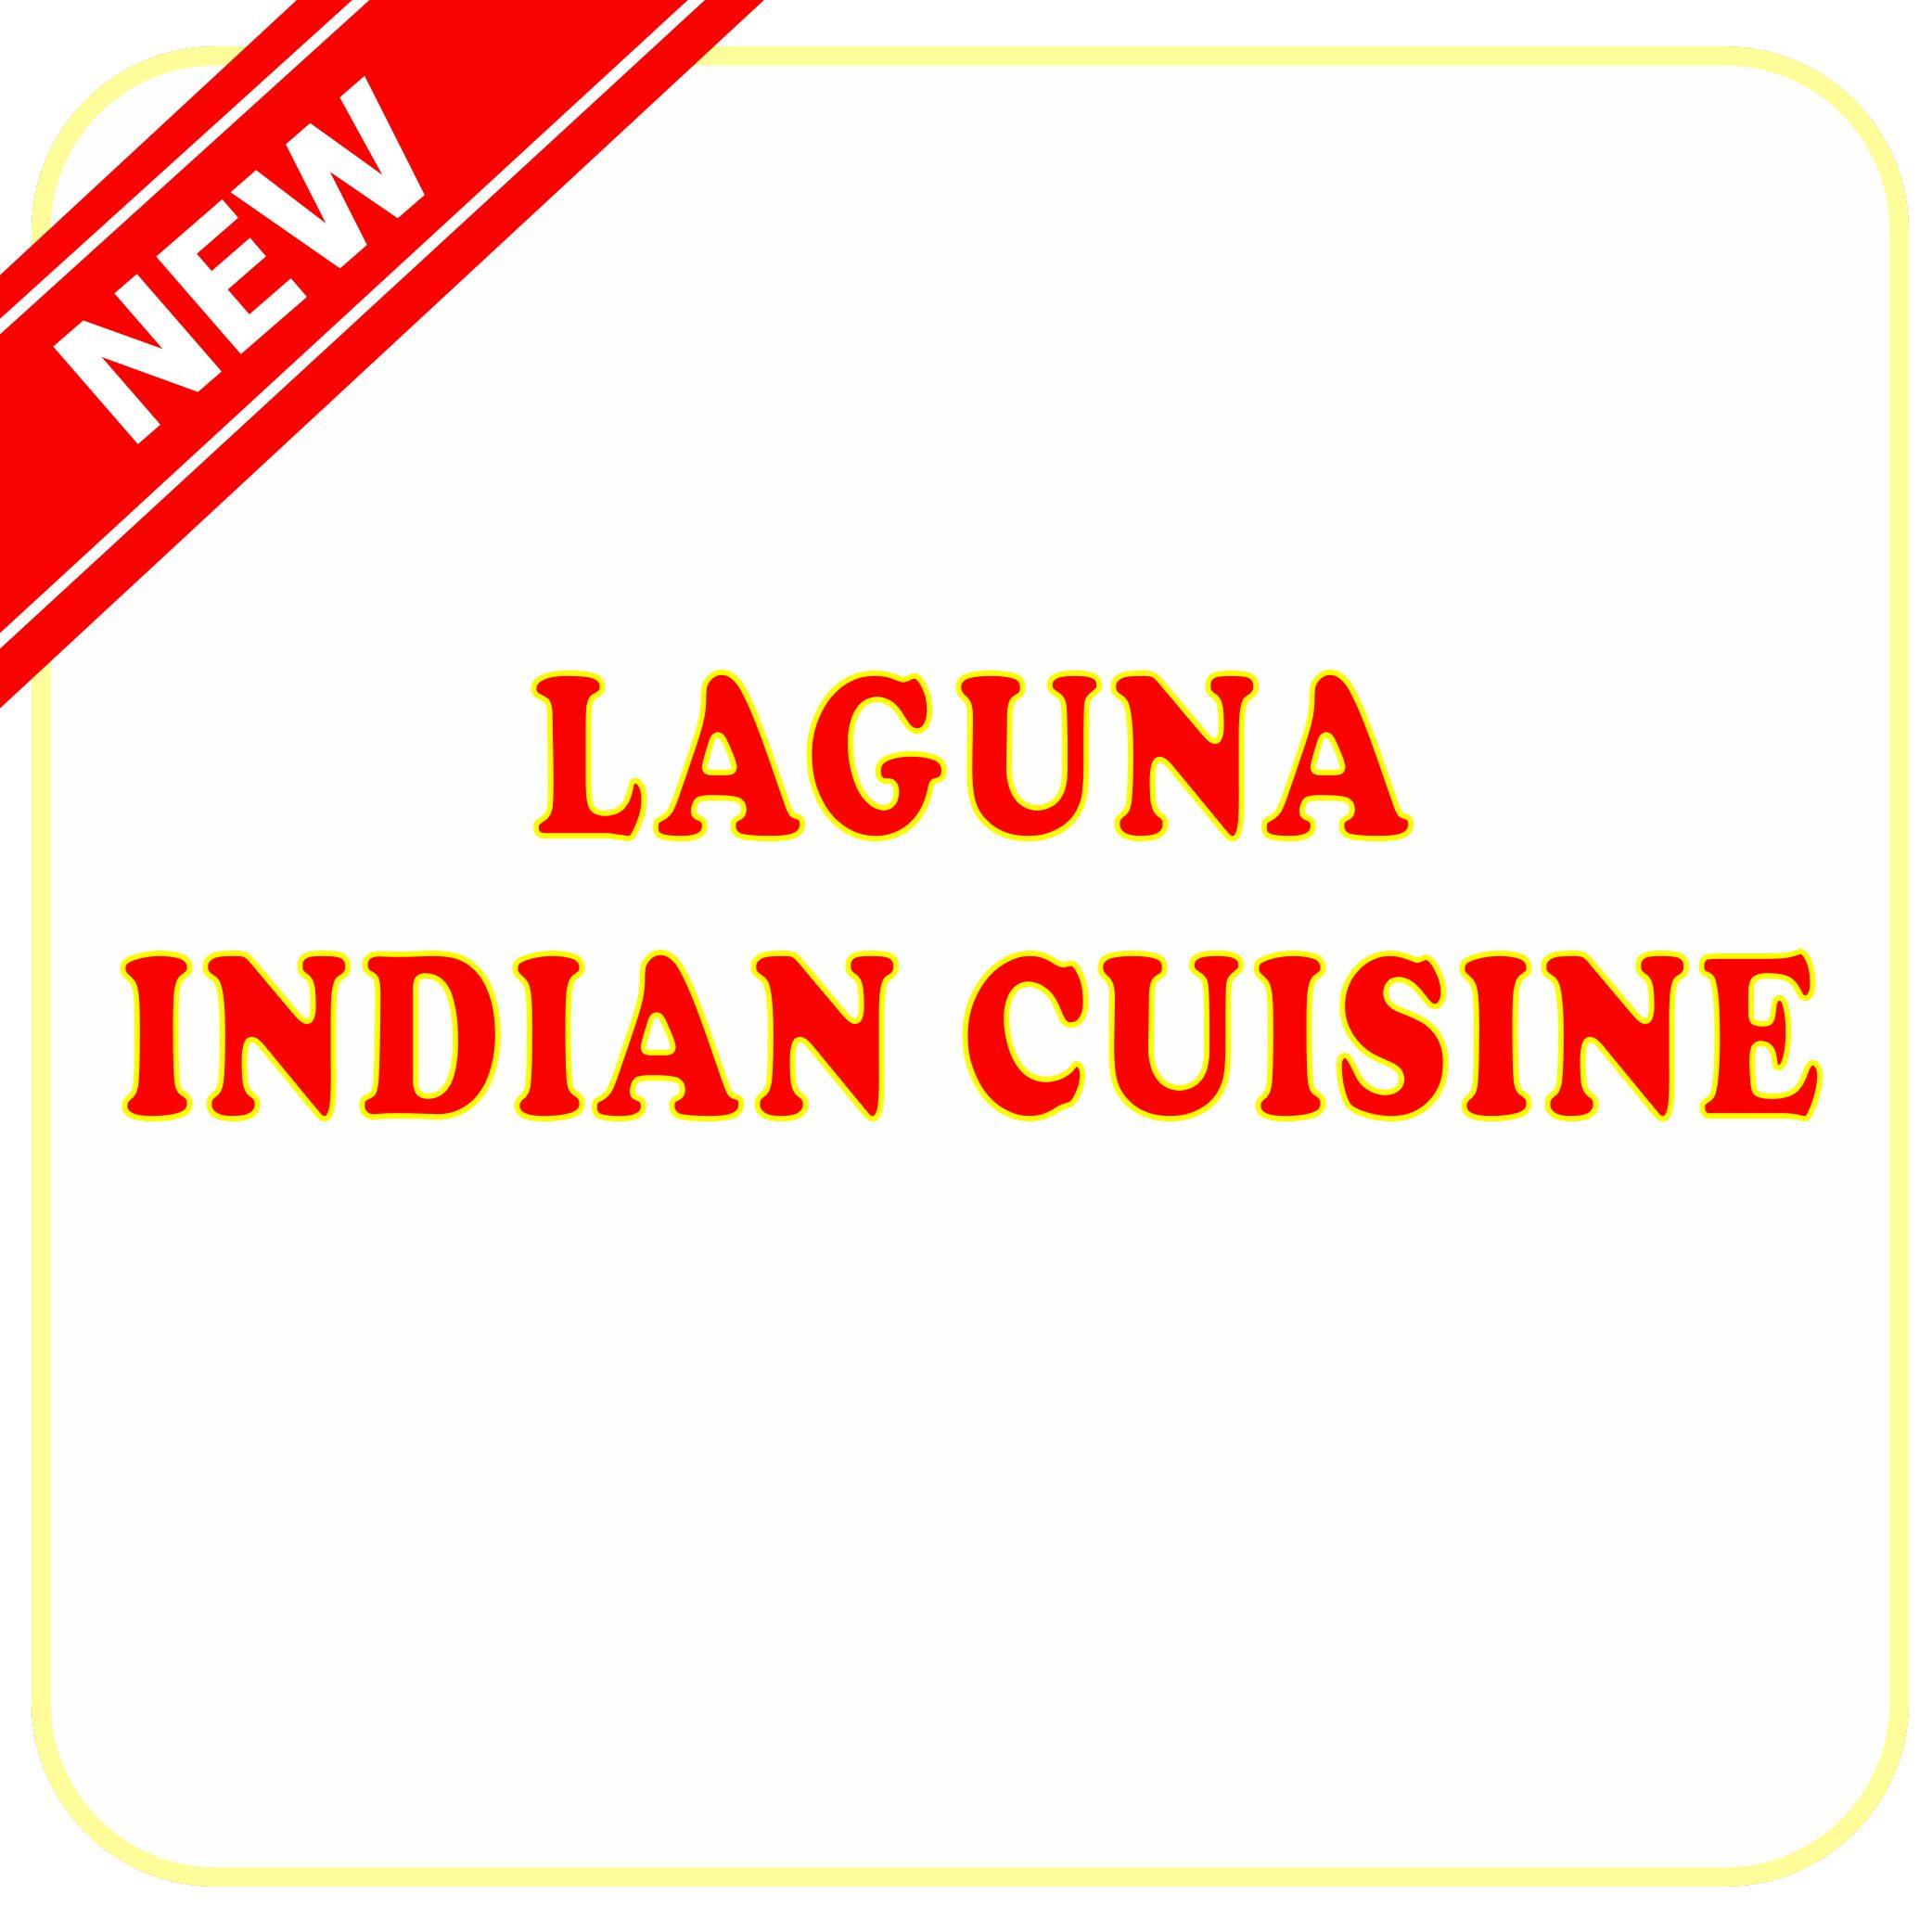 Laguna Indian Cuisine